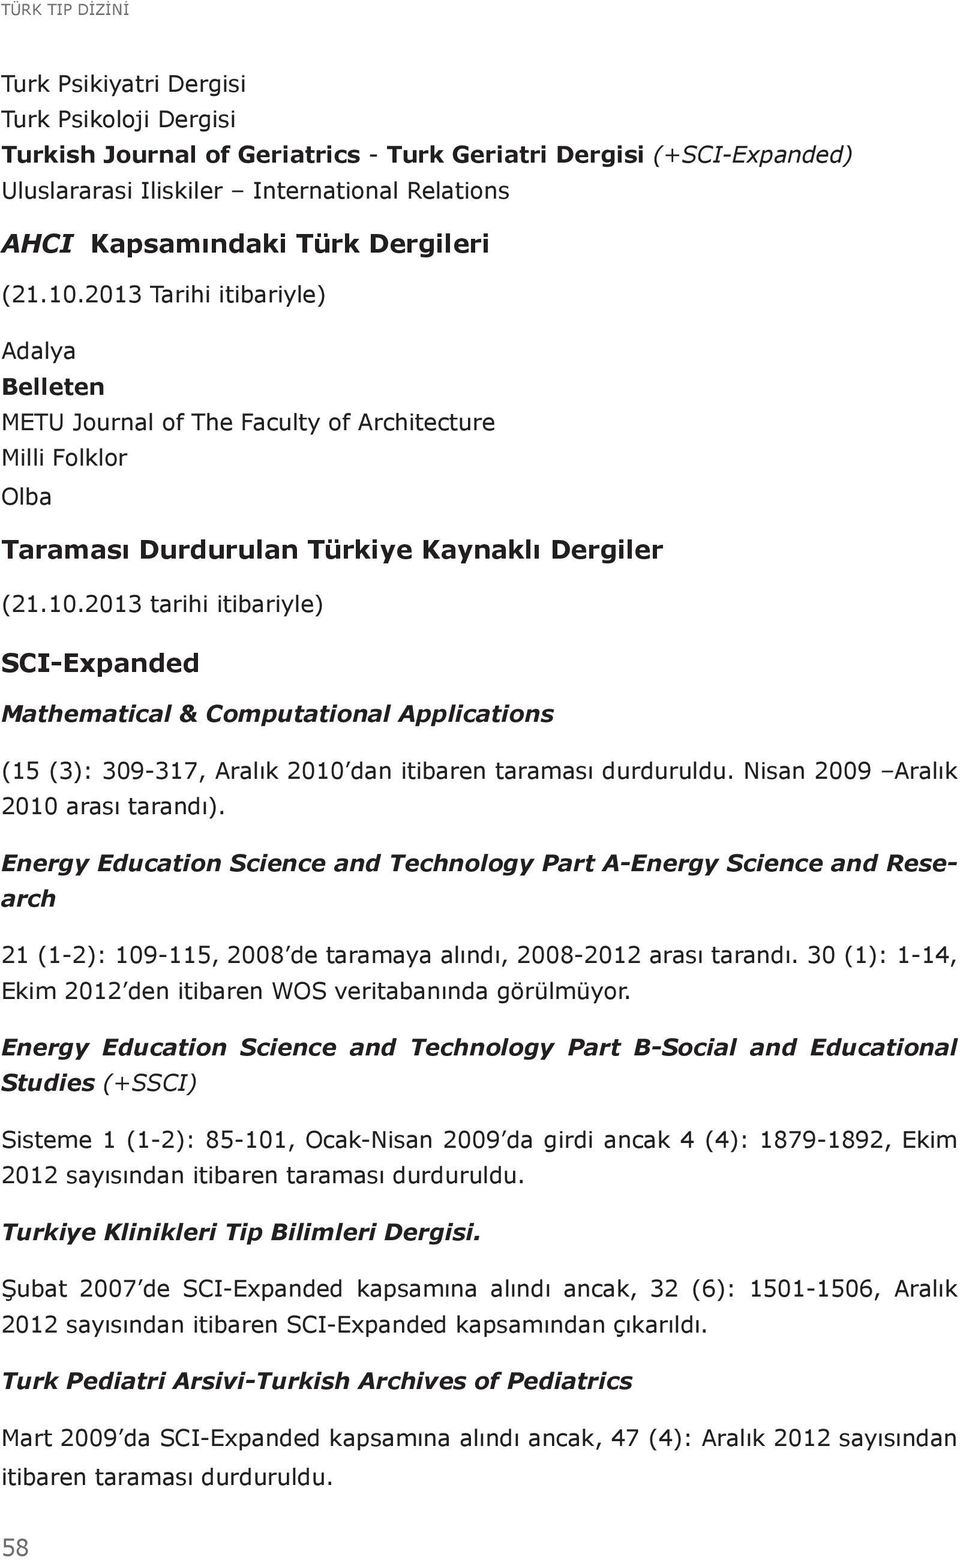 Nisan 2009 Aralık 2010 arası tarandı). Energy Education Science and Technology Part A-Energy Science and Research 21 (1-2): 109-115, 2008 de taramaya alındı, 2008-2012 arası tarandı.